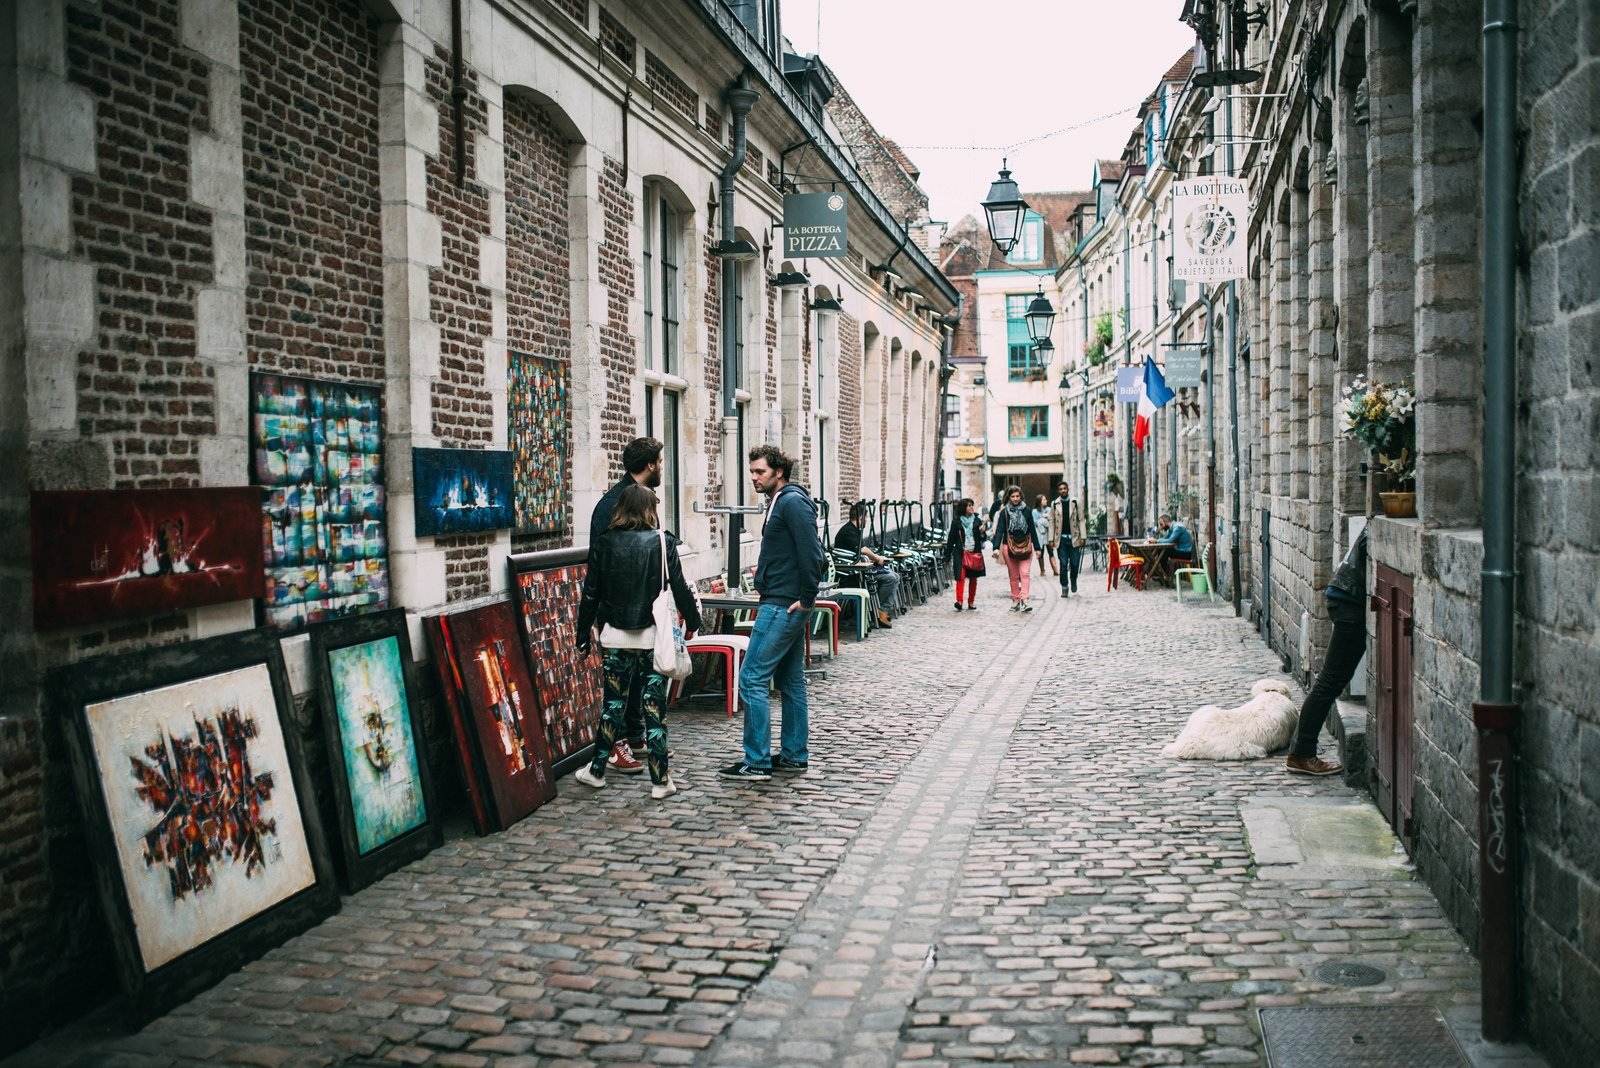 expo de peintures dans la rue lille en france. Black Bedroom Furniture Sets. Home Design Ideas